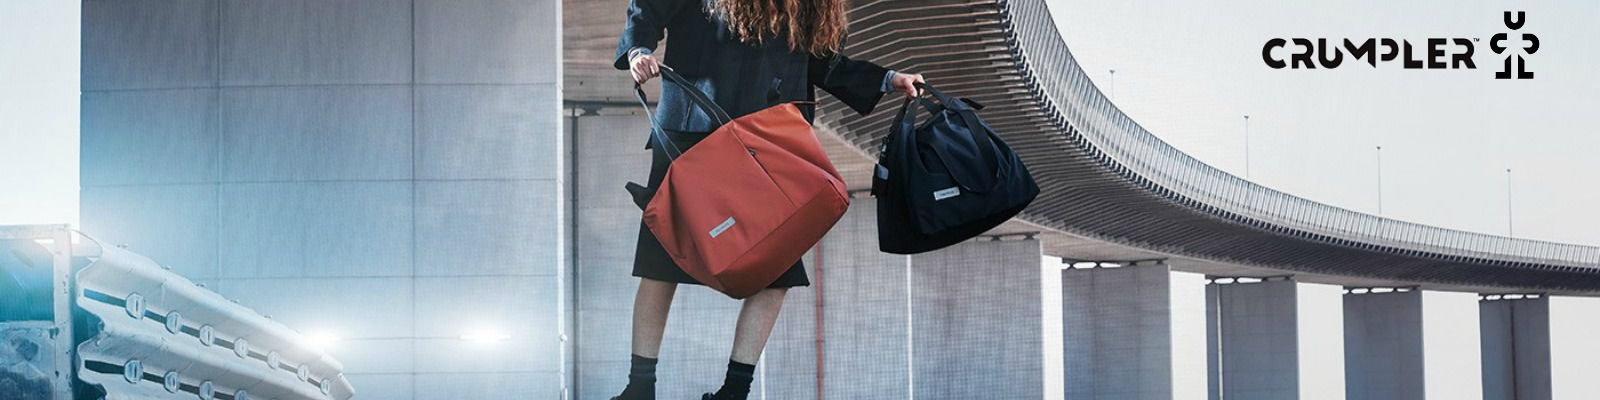 Crumpler bags, backpacks and more available online at Sportique.